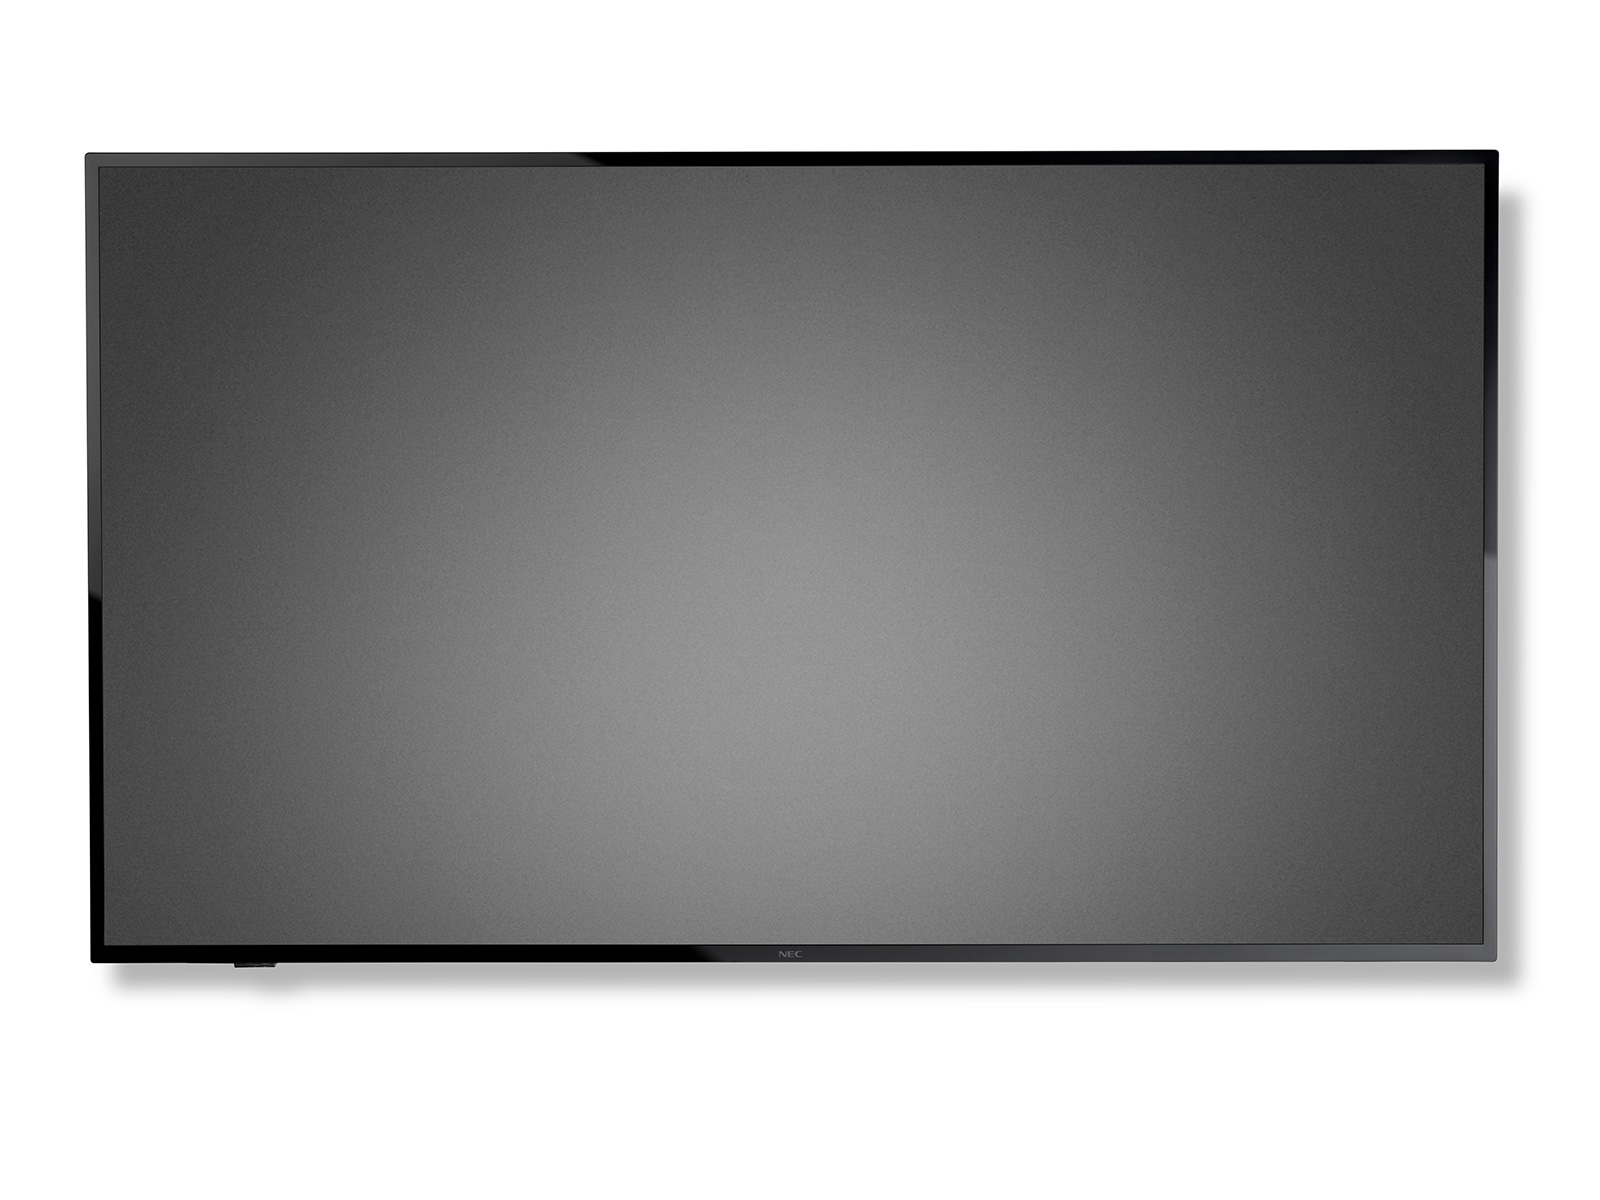 55'' LED NEC E557Q,3840 x 2160,VA,16/7,350cd